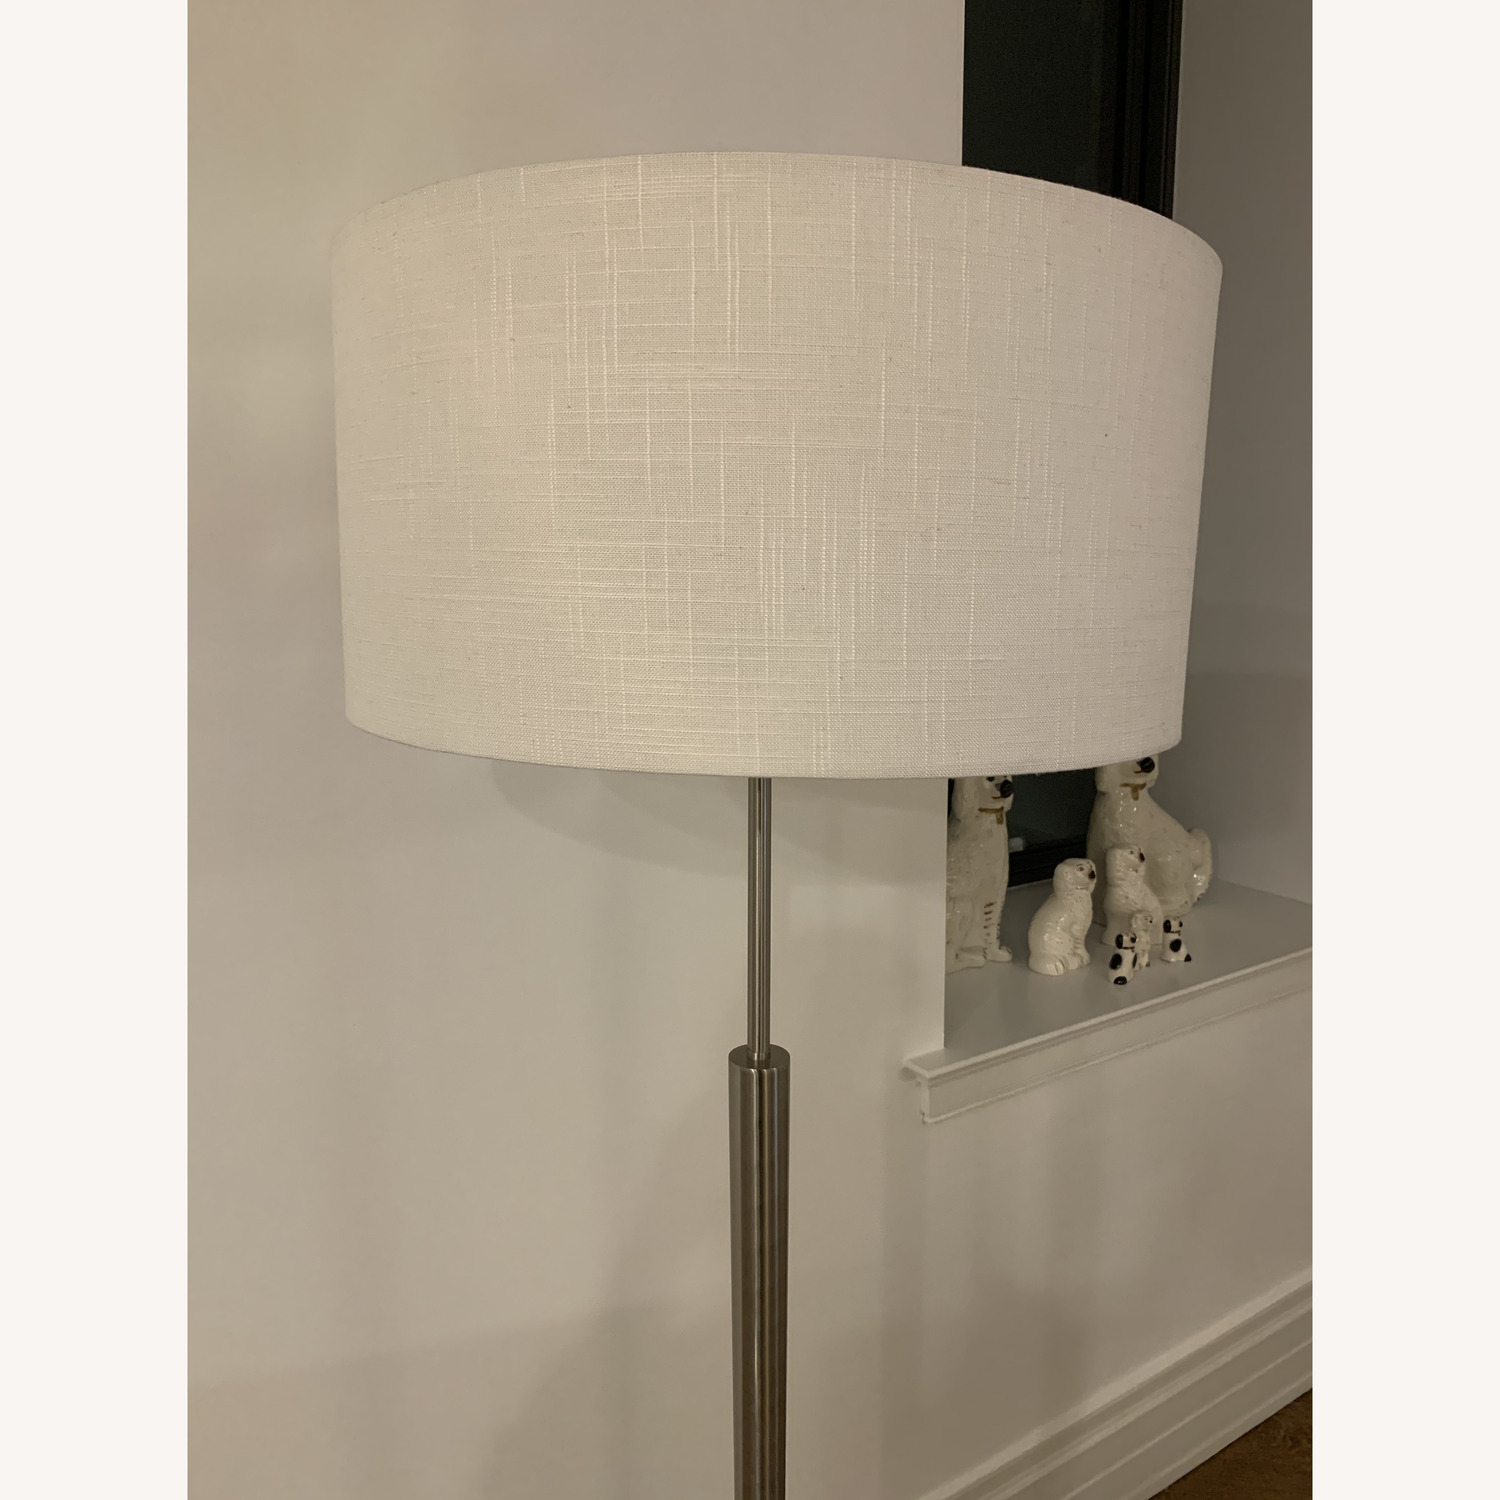 Stainless Steel Floor Lamp with Light Shade